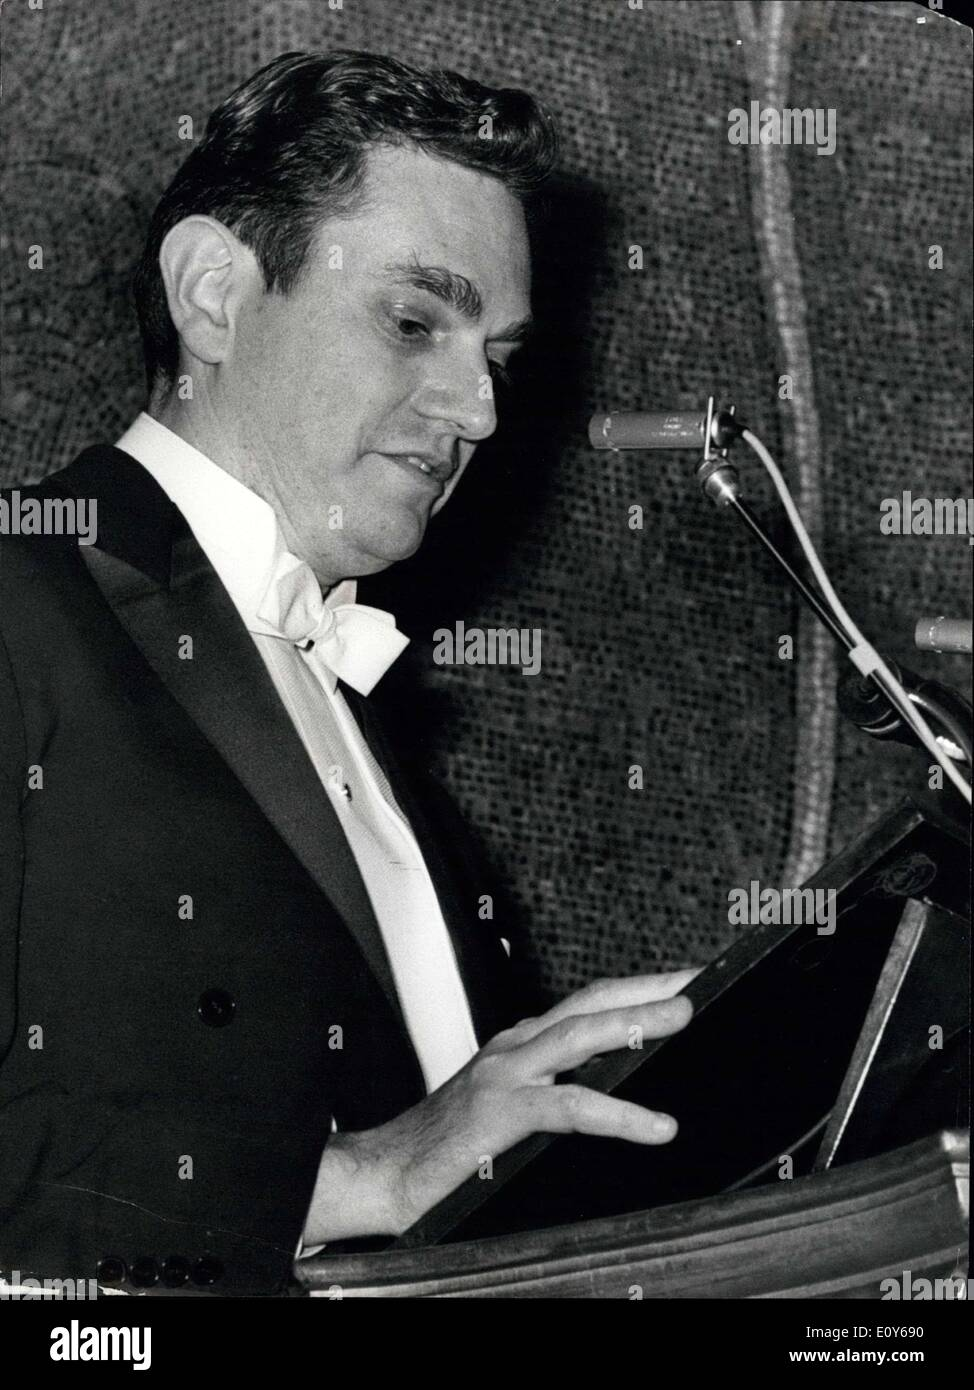 Dec. 10, 1968 - Dr. Marshall Nirenberg speaking at the Nobeldinner. Stock Photo